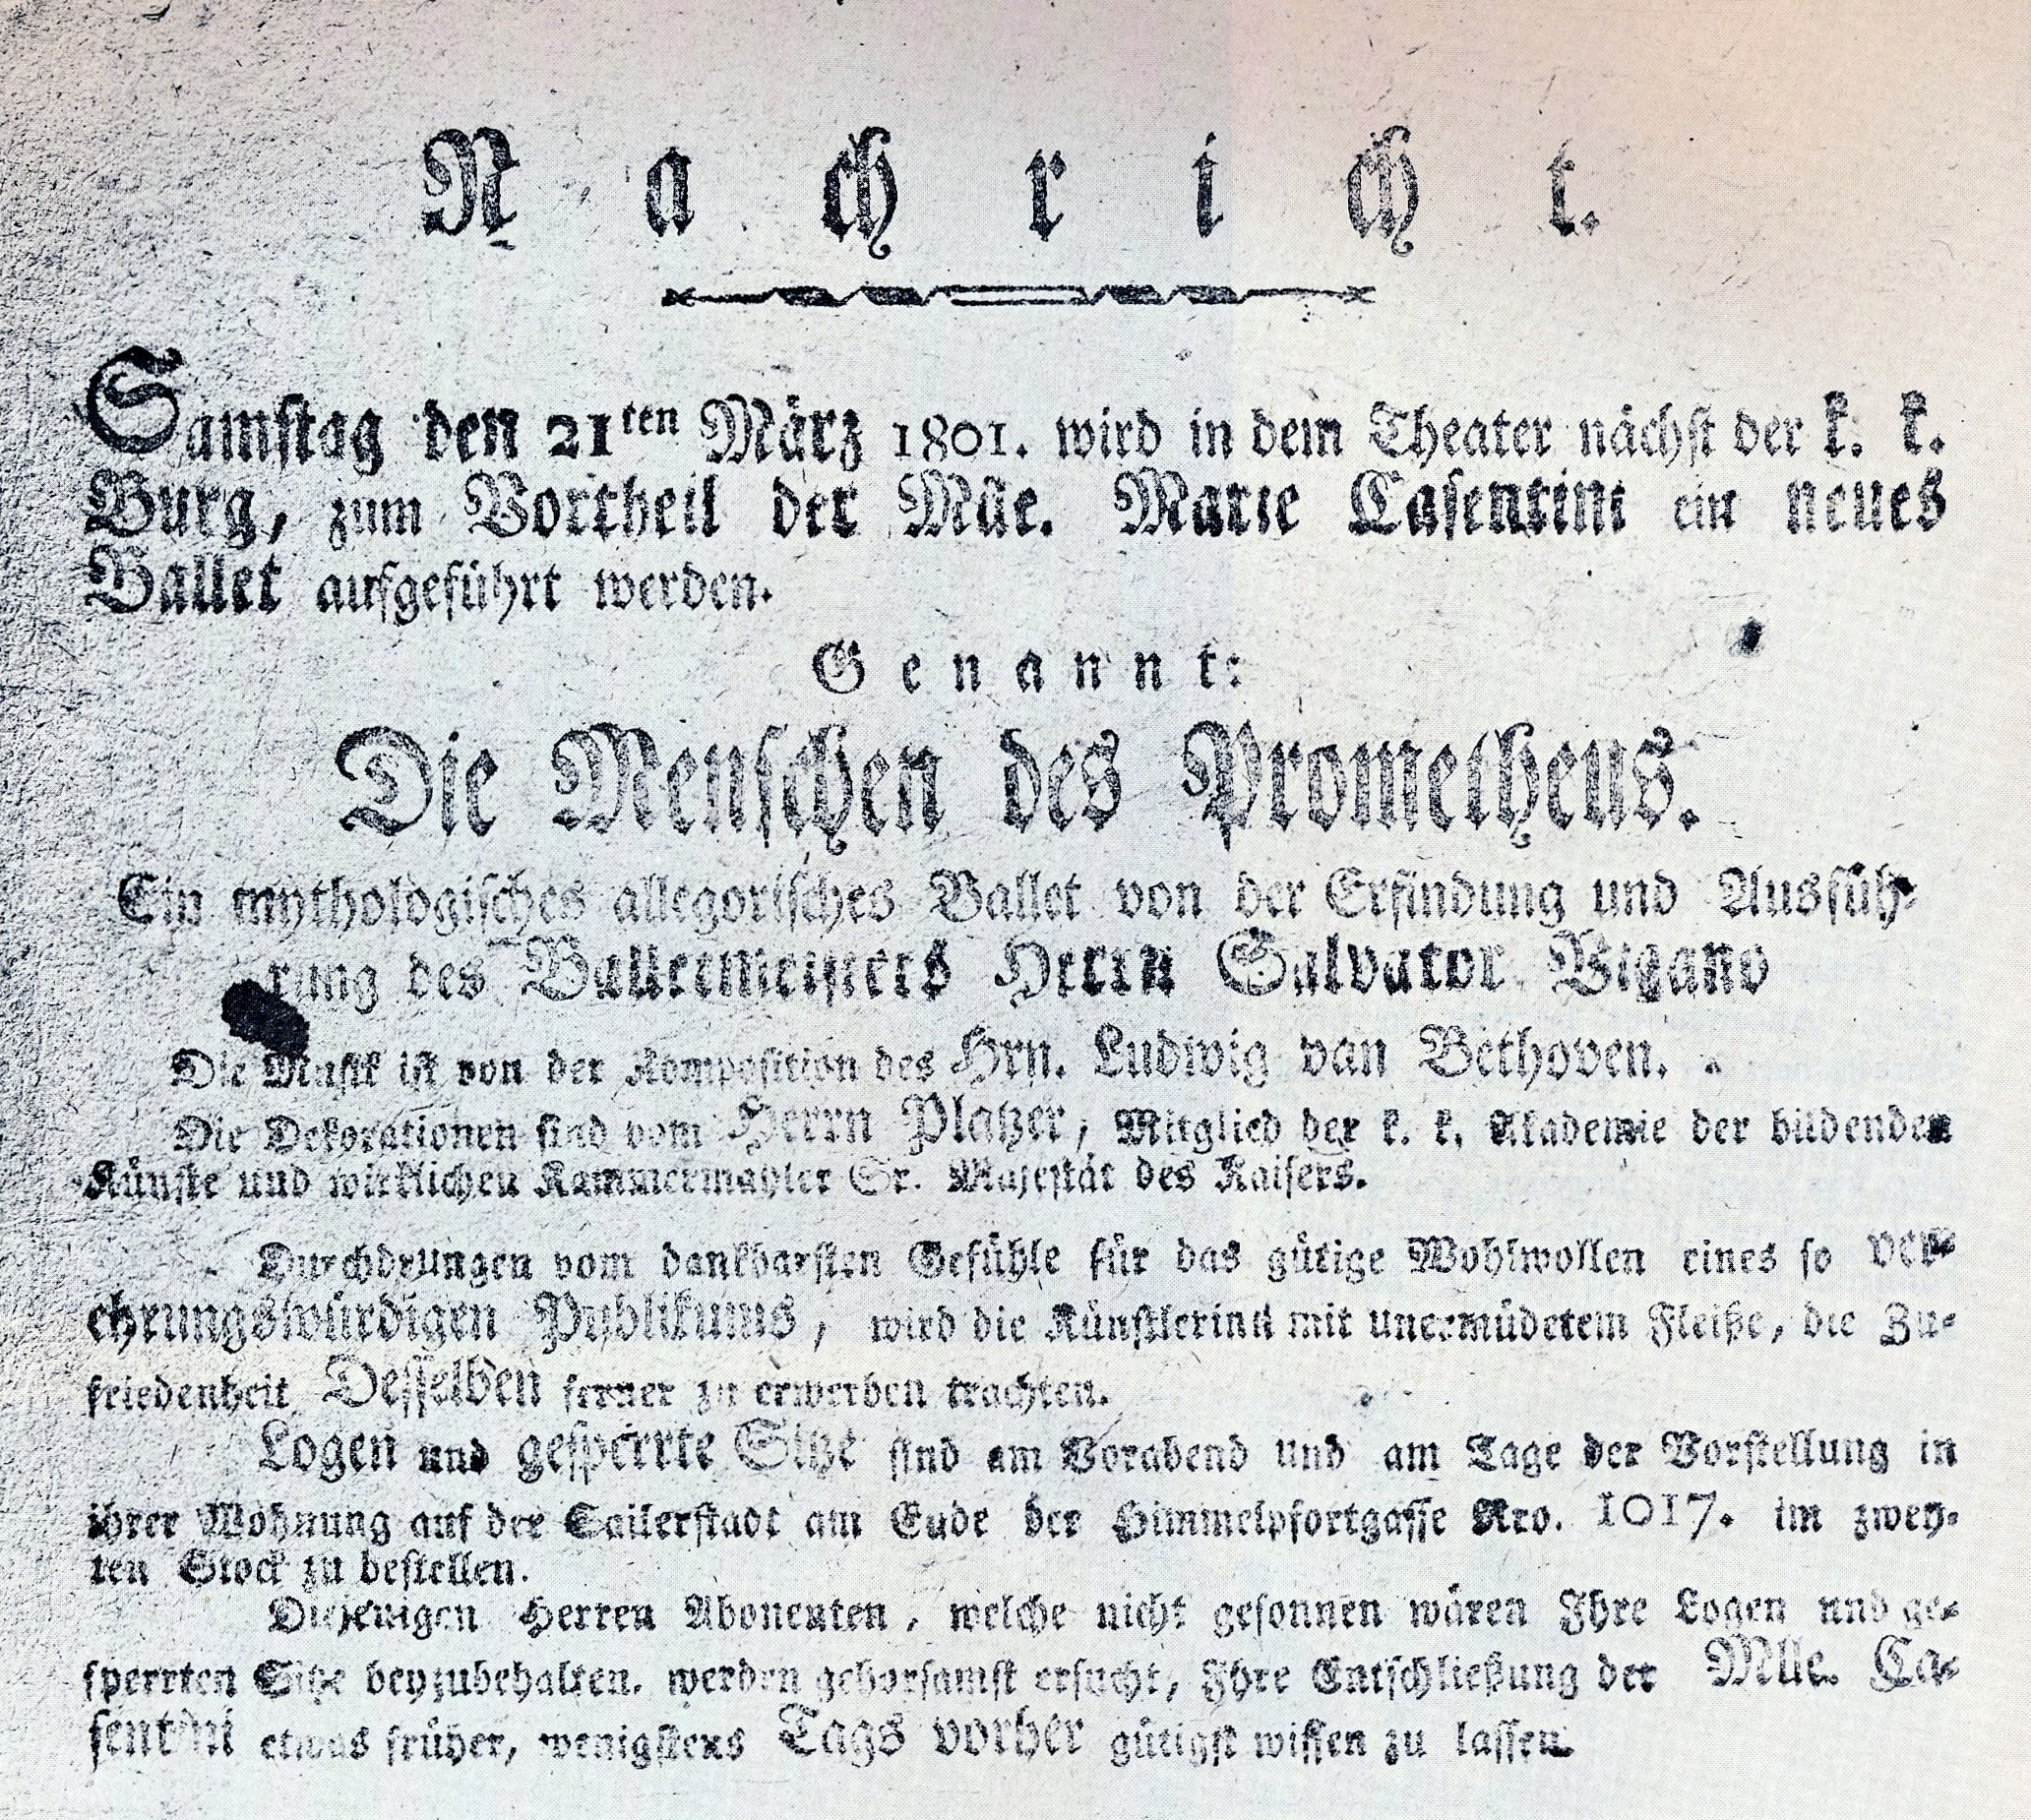 Faded handbill for the premiere performance of The Creatures of Prometheus (March 28, 1801).